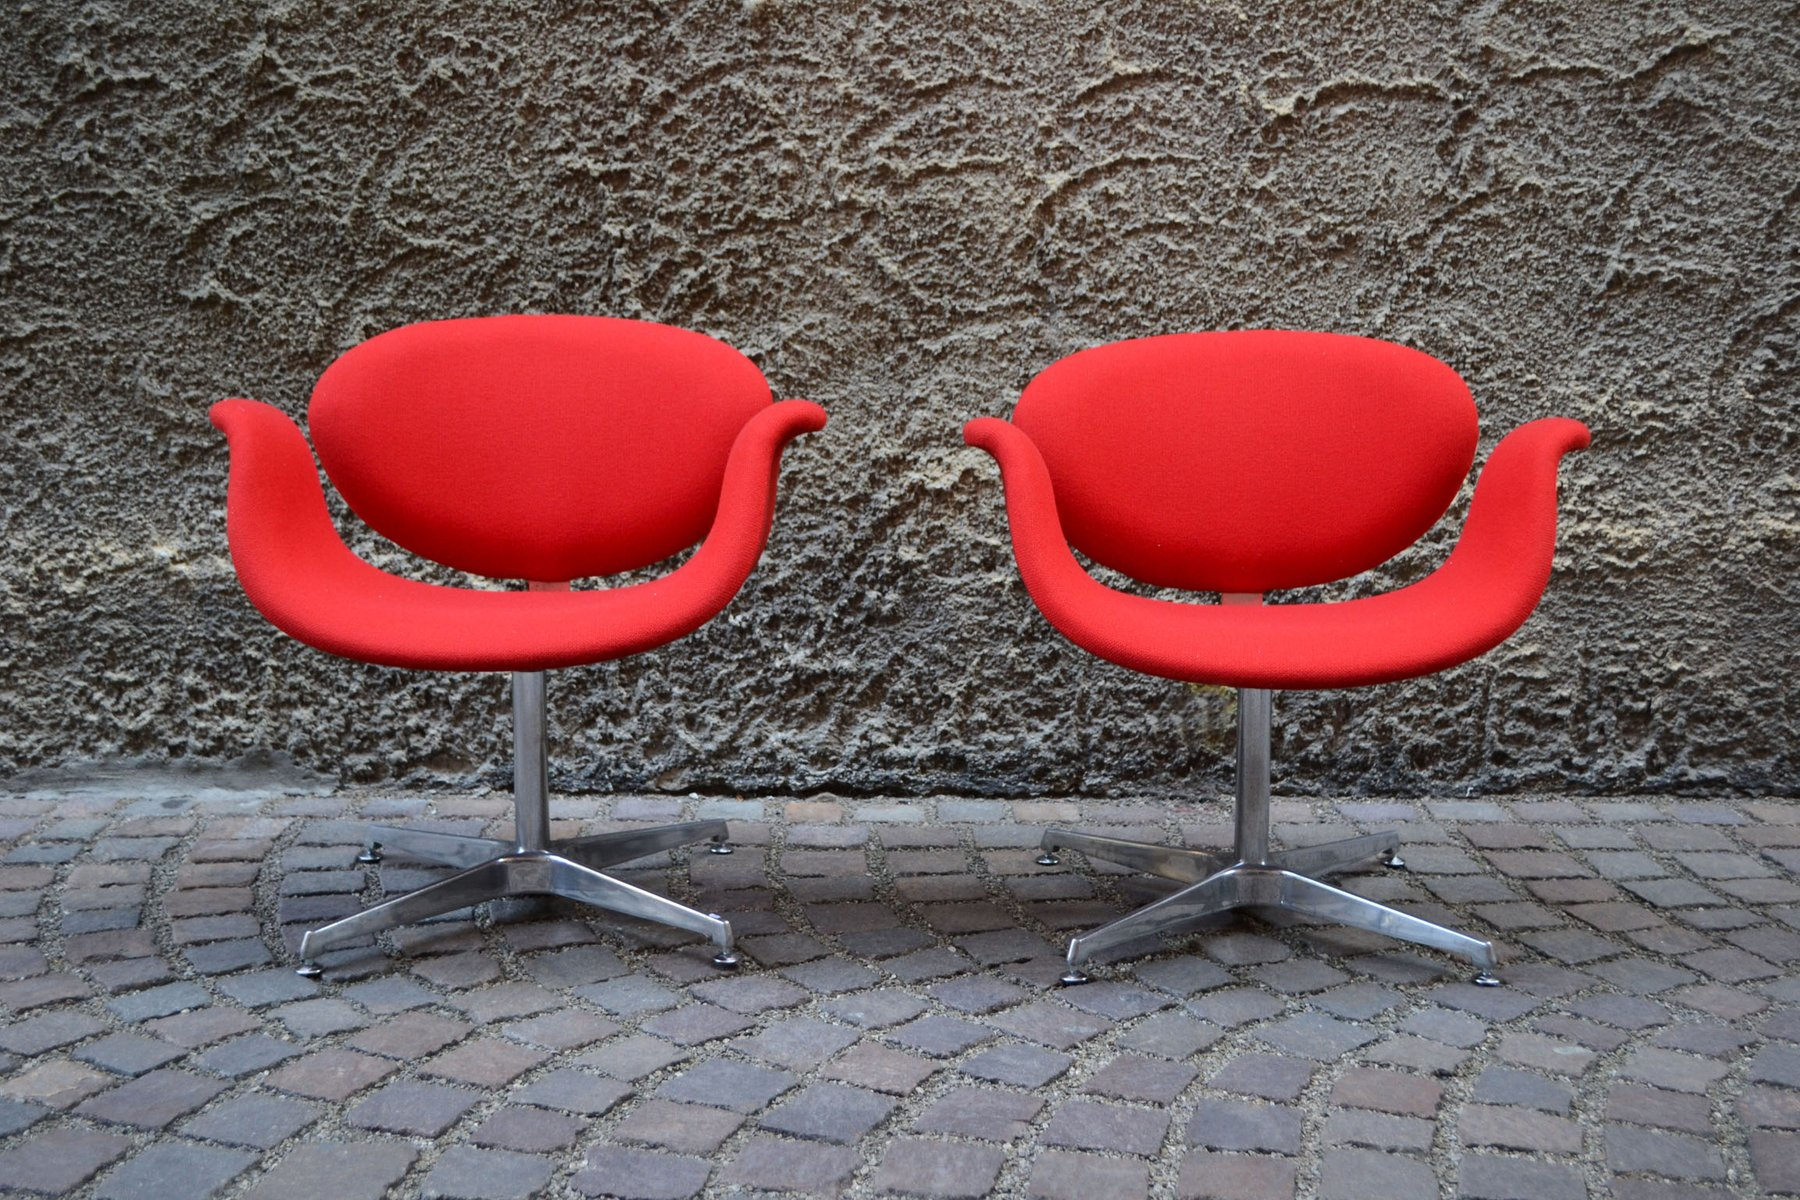 Little tulip chairs by pierre paulin for artifort 1960s set of 2 for sale at pamono - Tulip chairs for sale ...